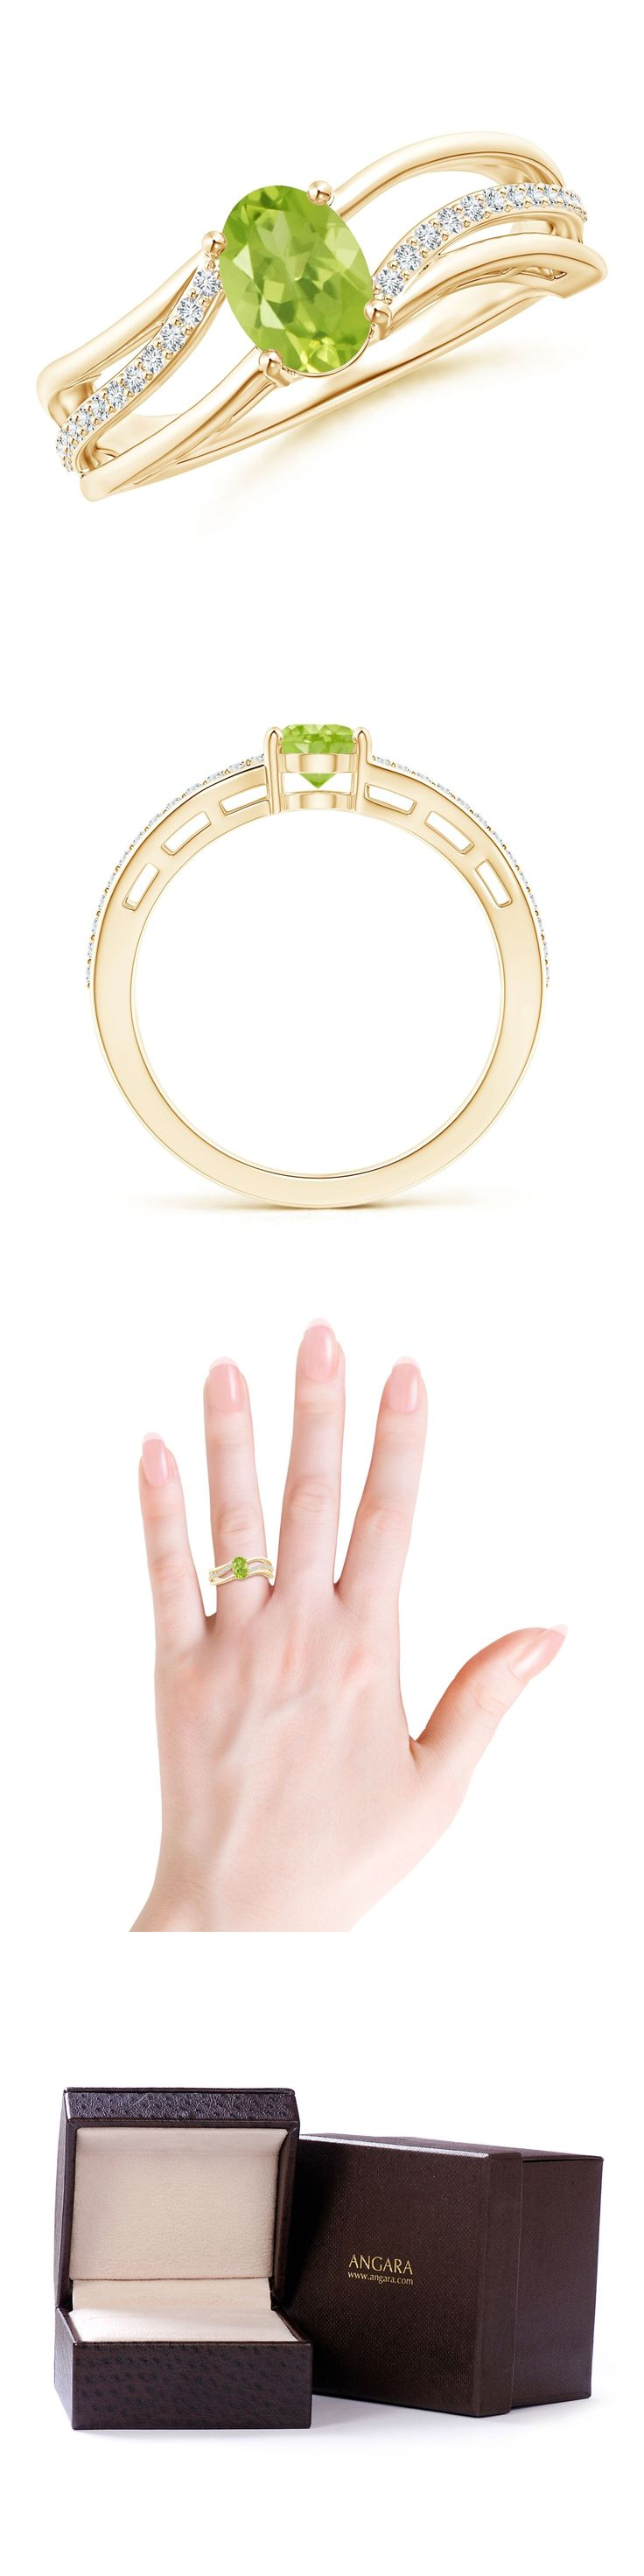 Gemstone 164343: Solitaire Oval Green Peridot Engagement Ring With Diamond 14K Yellow Gold Size 6 BUY IT NOW ONLY: $323.1